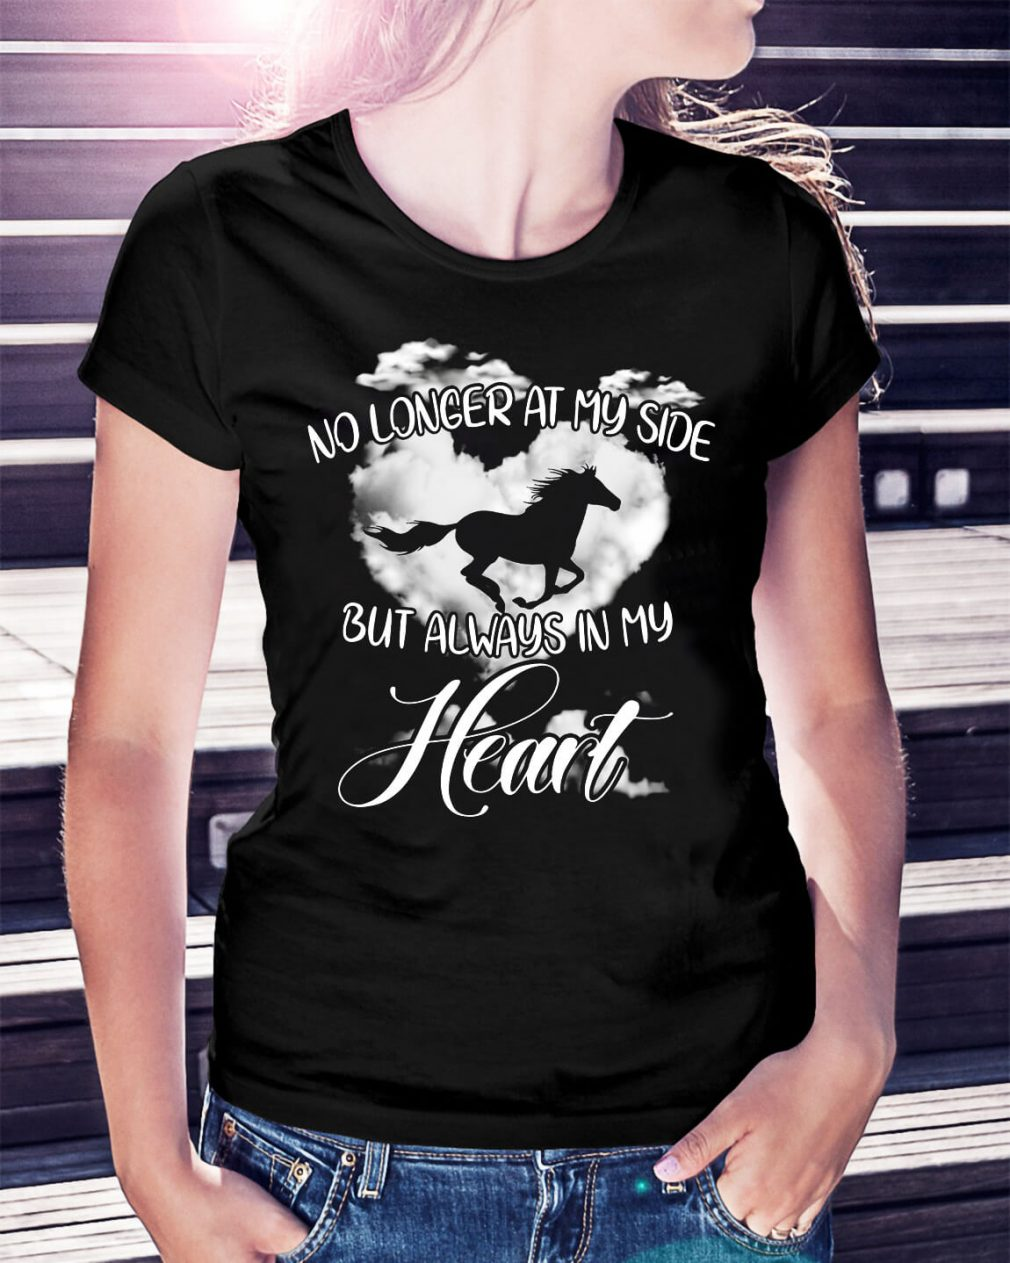 No longer at my side but always in my heart shirt